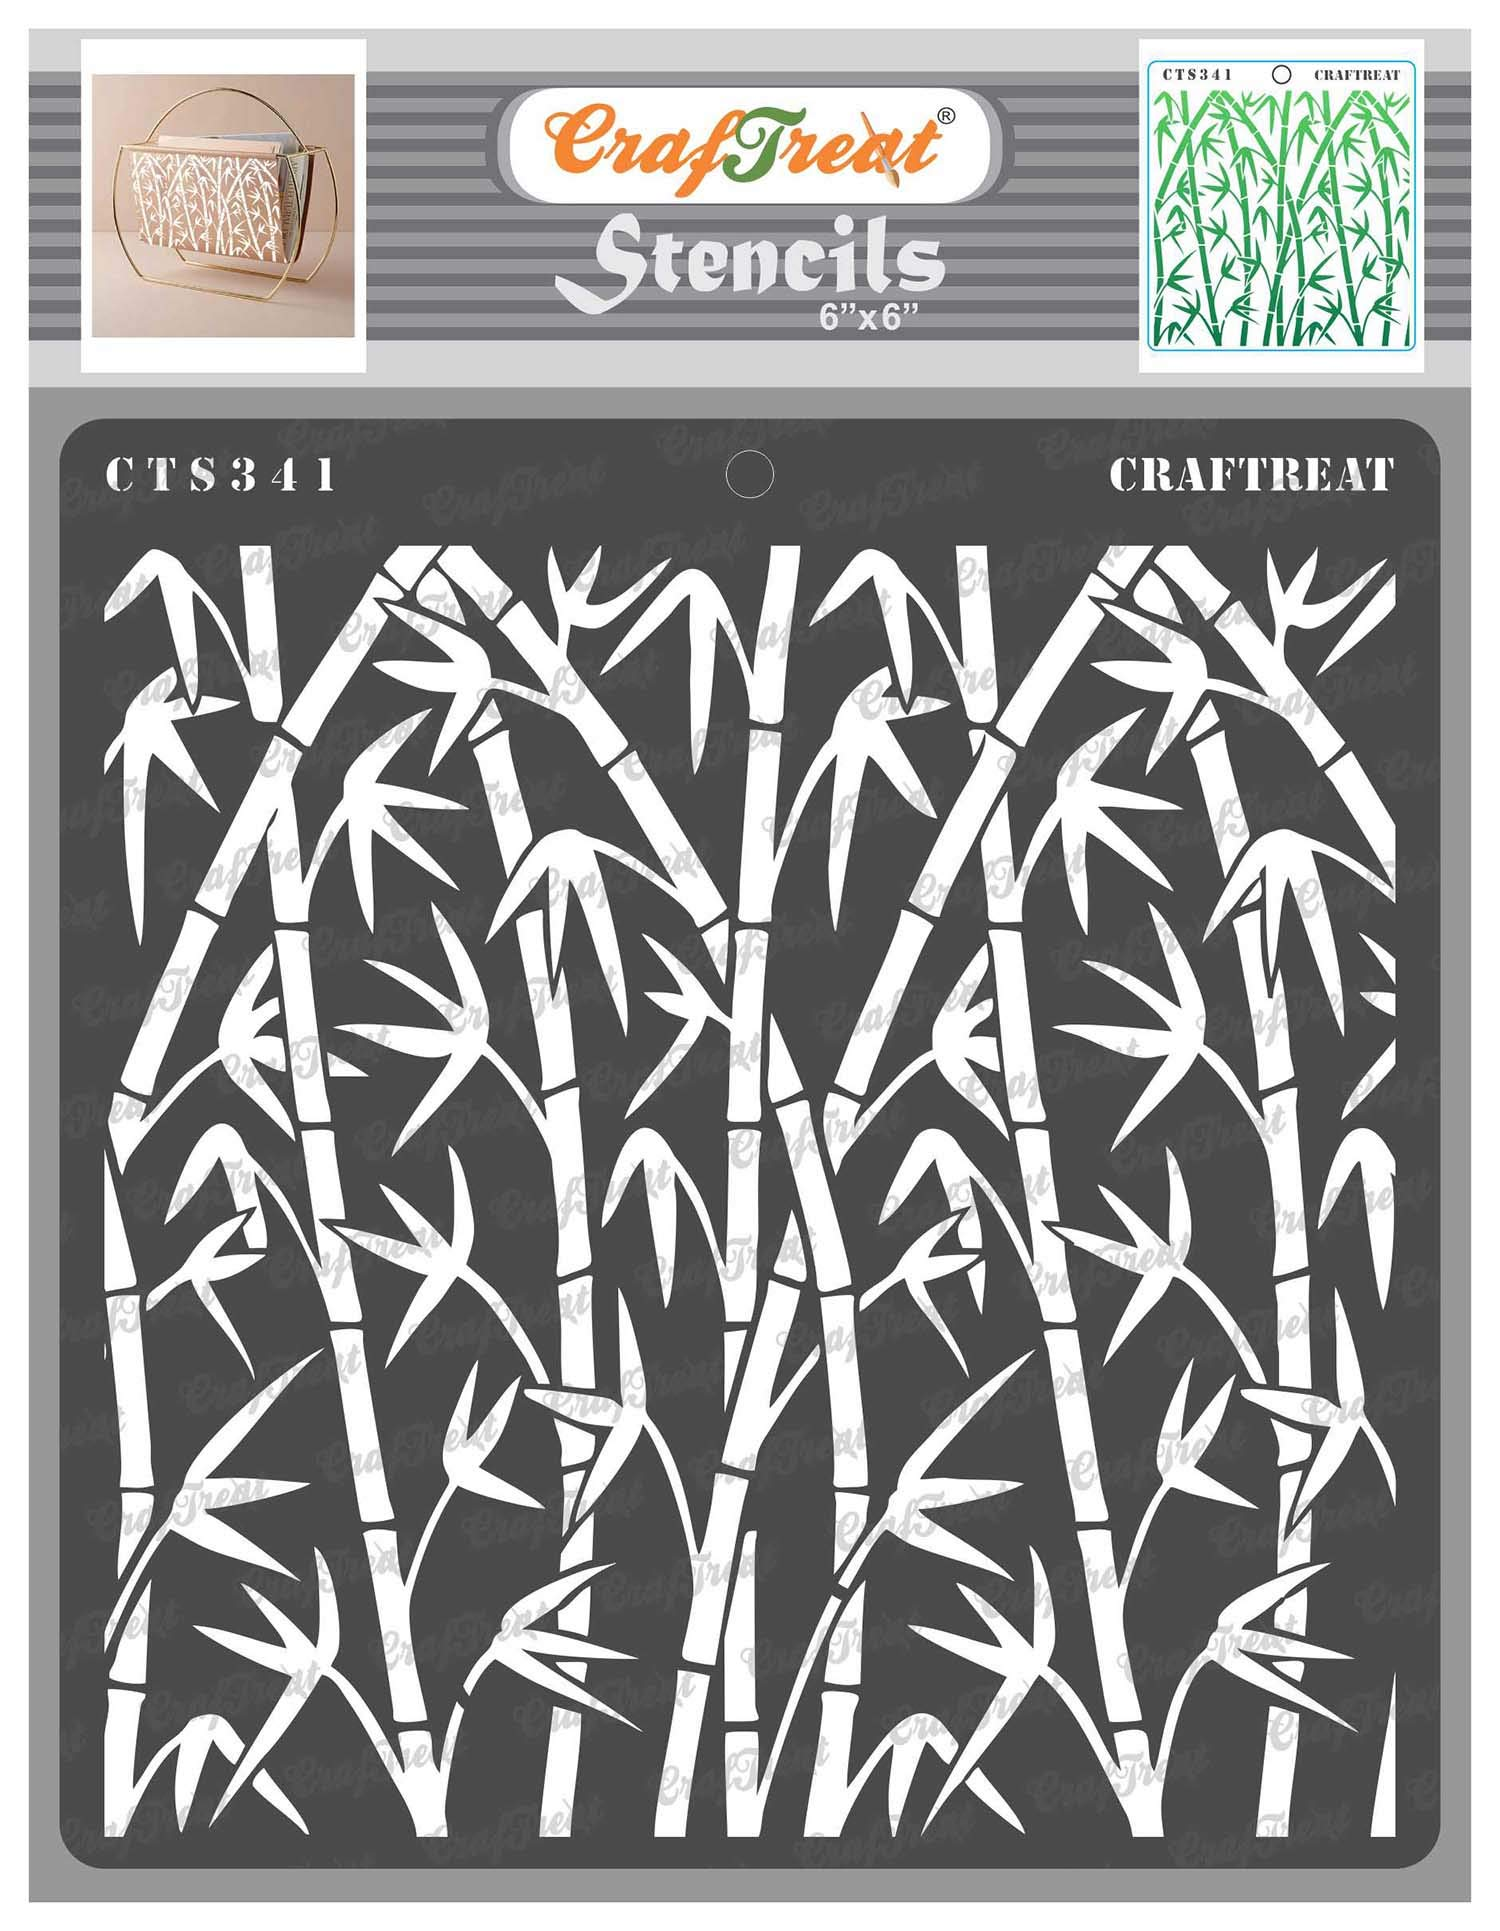 CrafTreat Forest Stencils for Painting on Wood, Canvas, Paper, Fabric, Floor, Wall and Tile - Bamboo Forest - 6x6 Inches - Reusable DIY Art and Craft Stencils - Bamboo Stencil